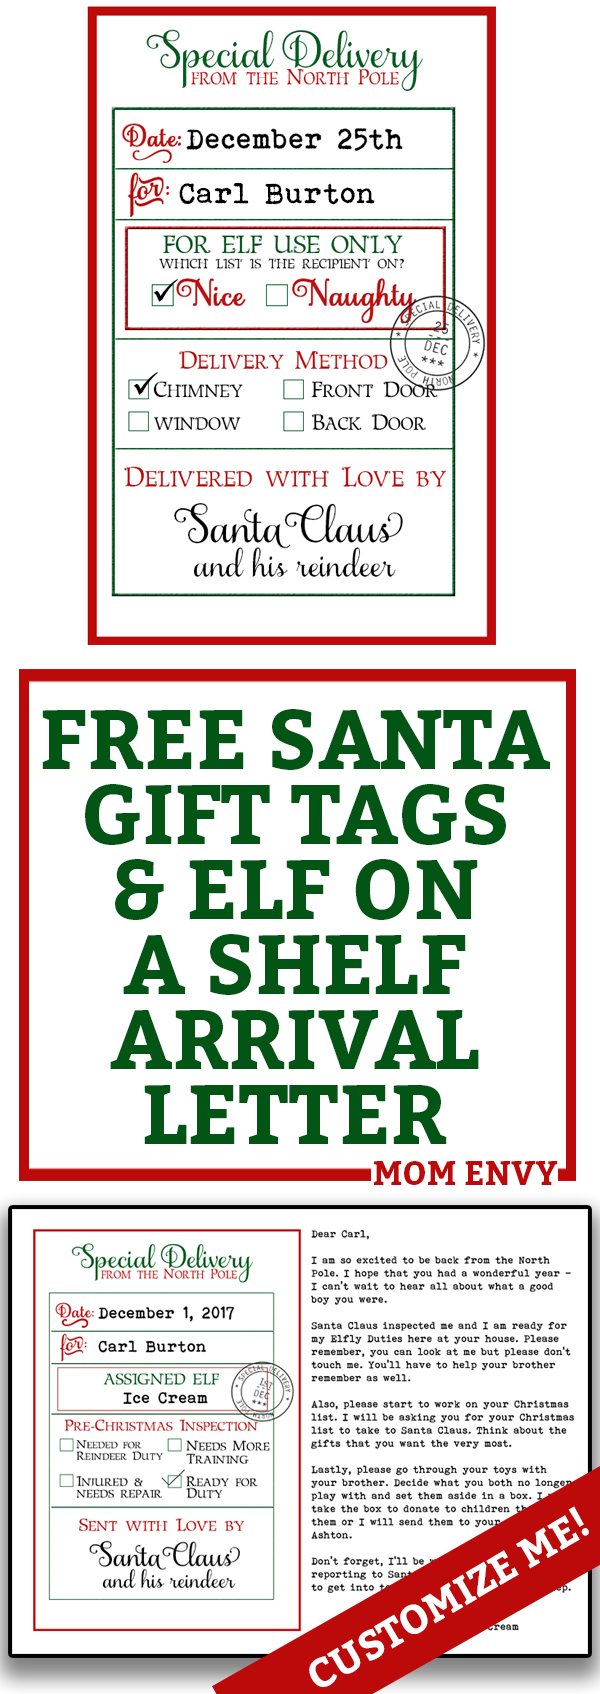 photo about Printable Elf on the Shelf Letter titled Cost-free Custom made Santa Reward Tags and Elf Advent Letter - 3 Totally free